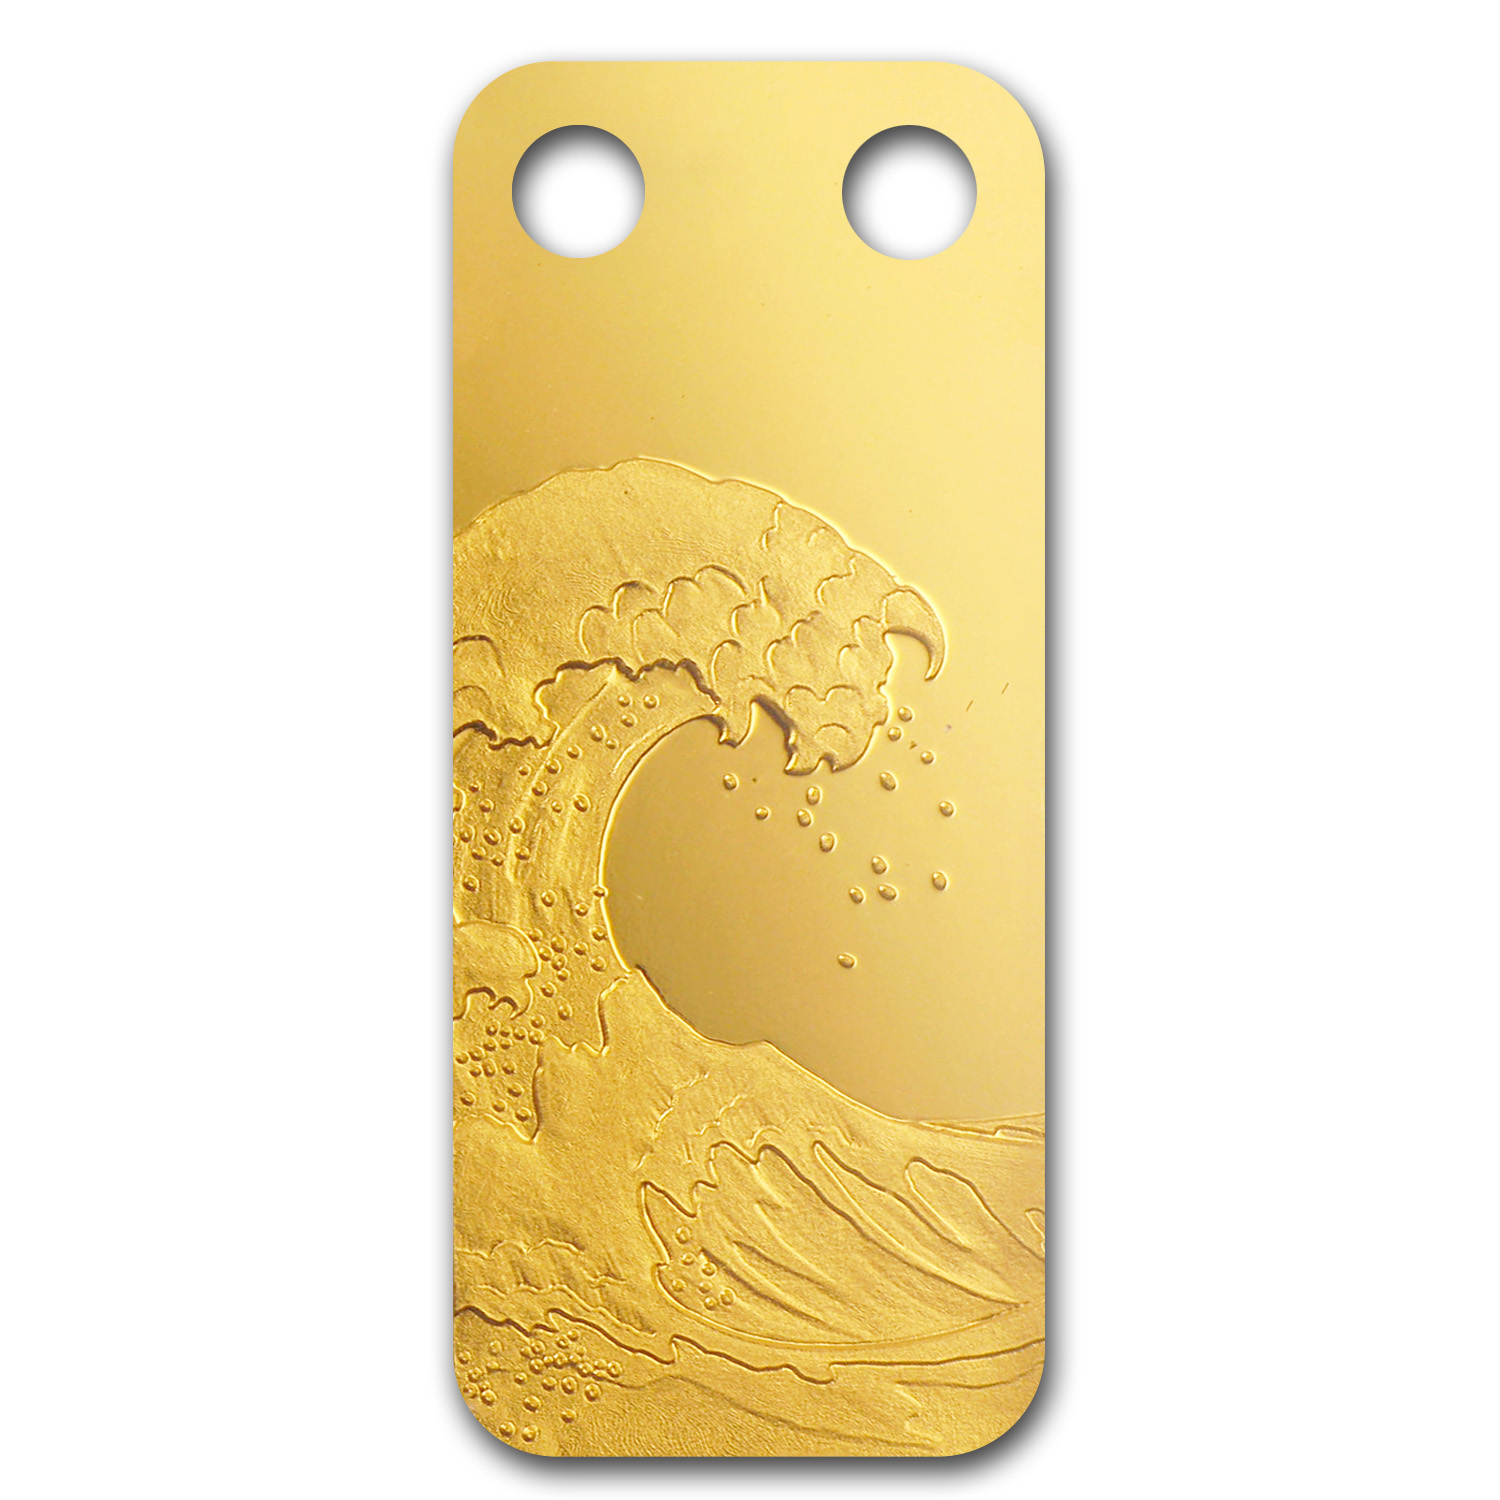 1/5 oz Gold Pendant - Pamp Suisse Ingot (Wave, Proof)